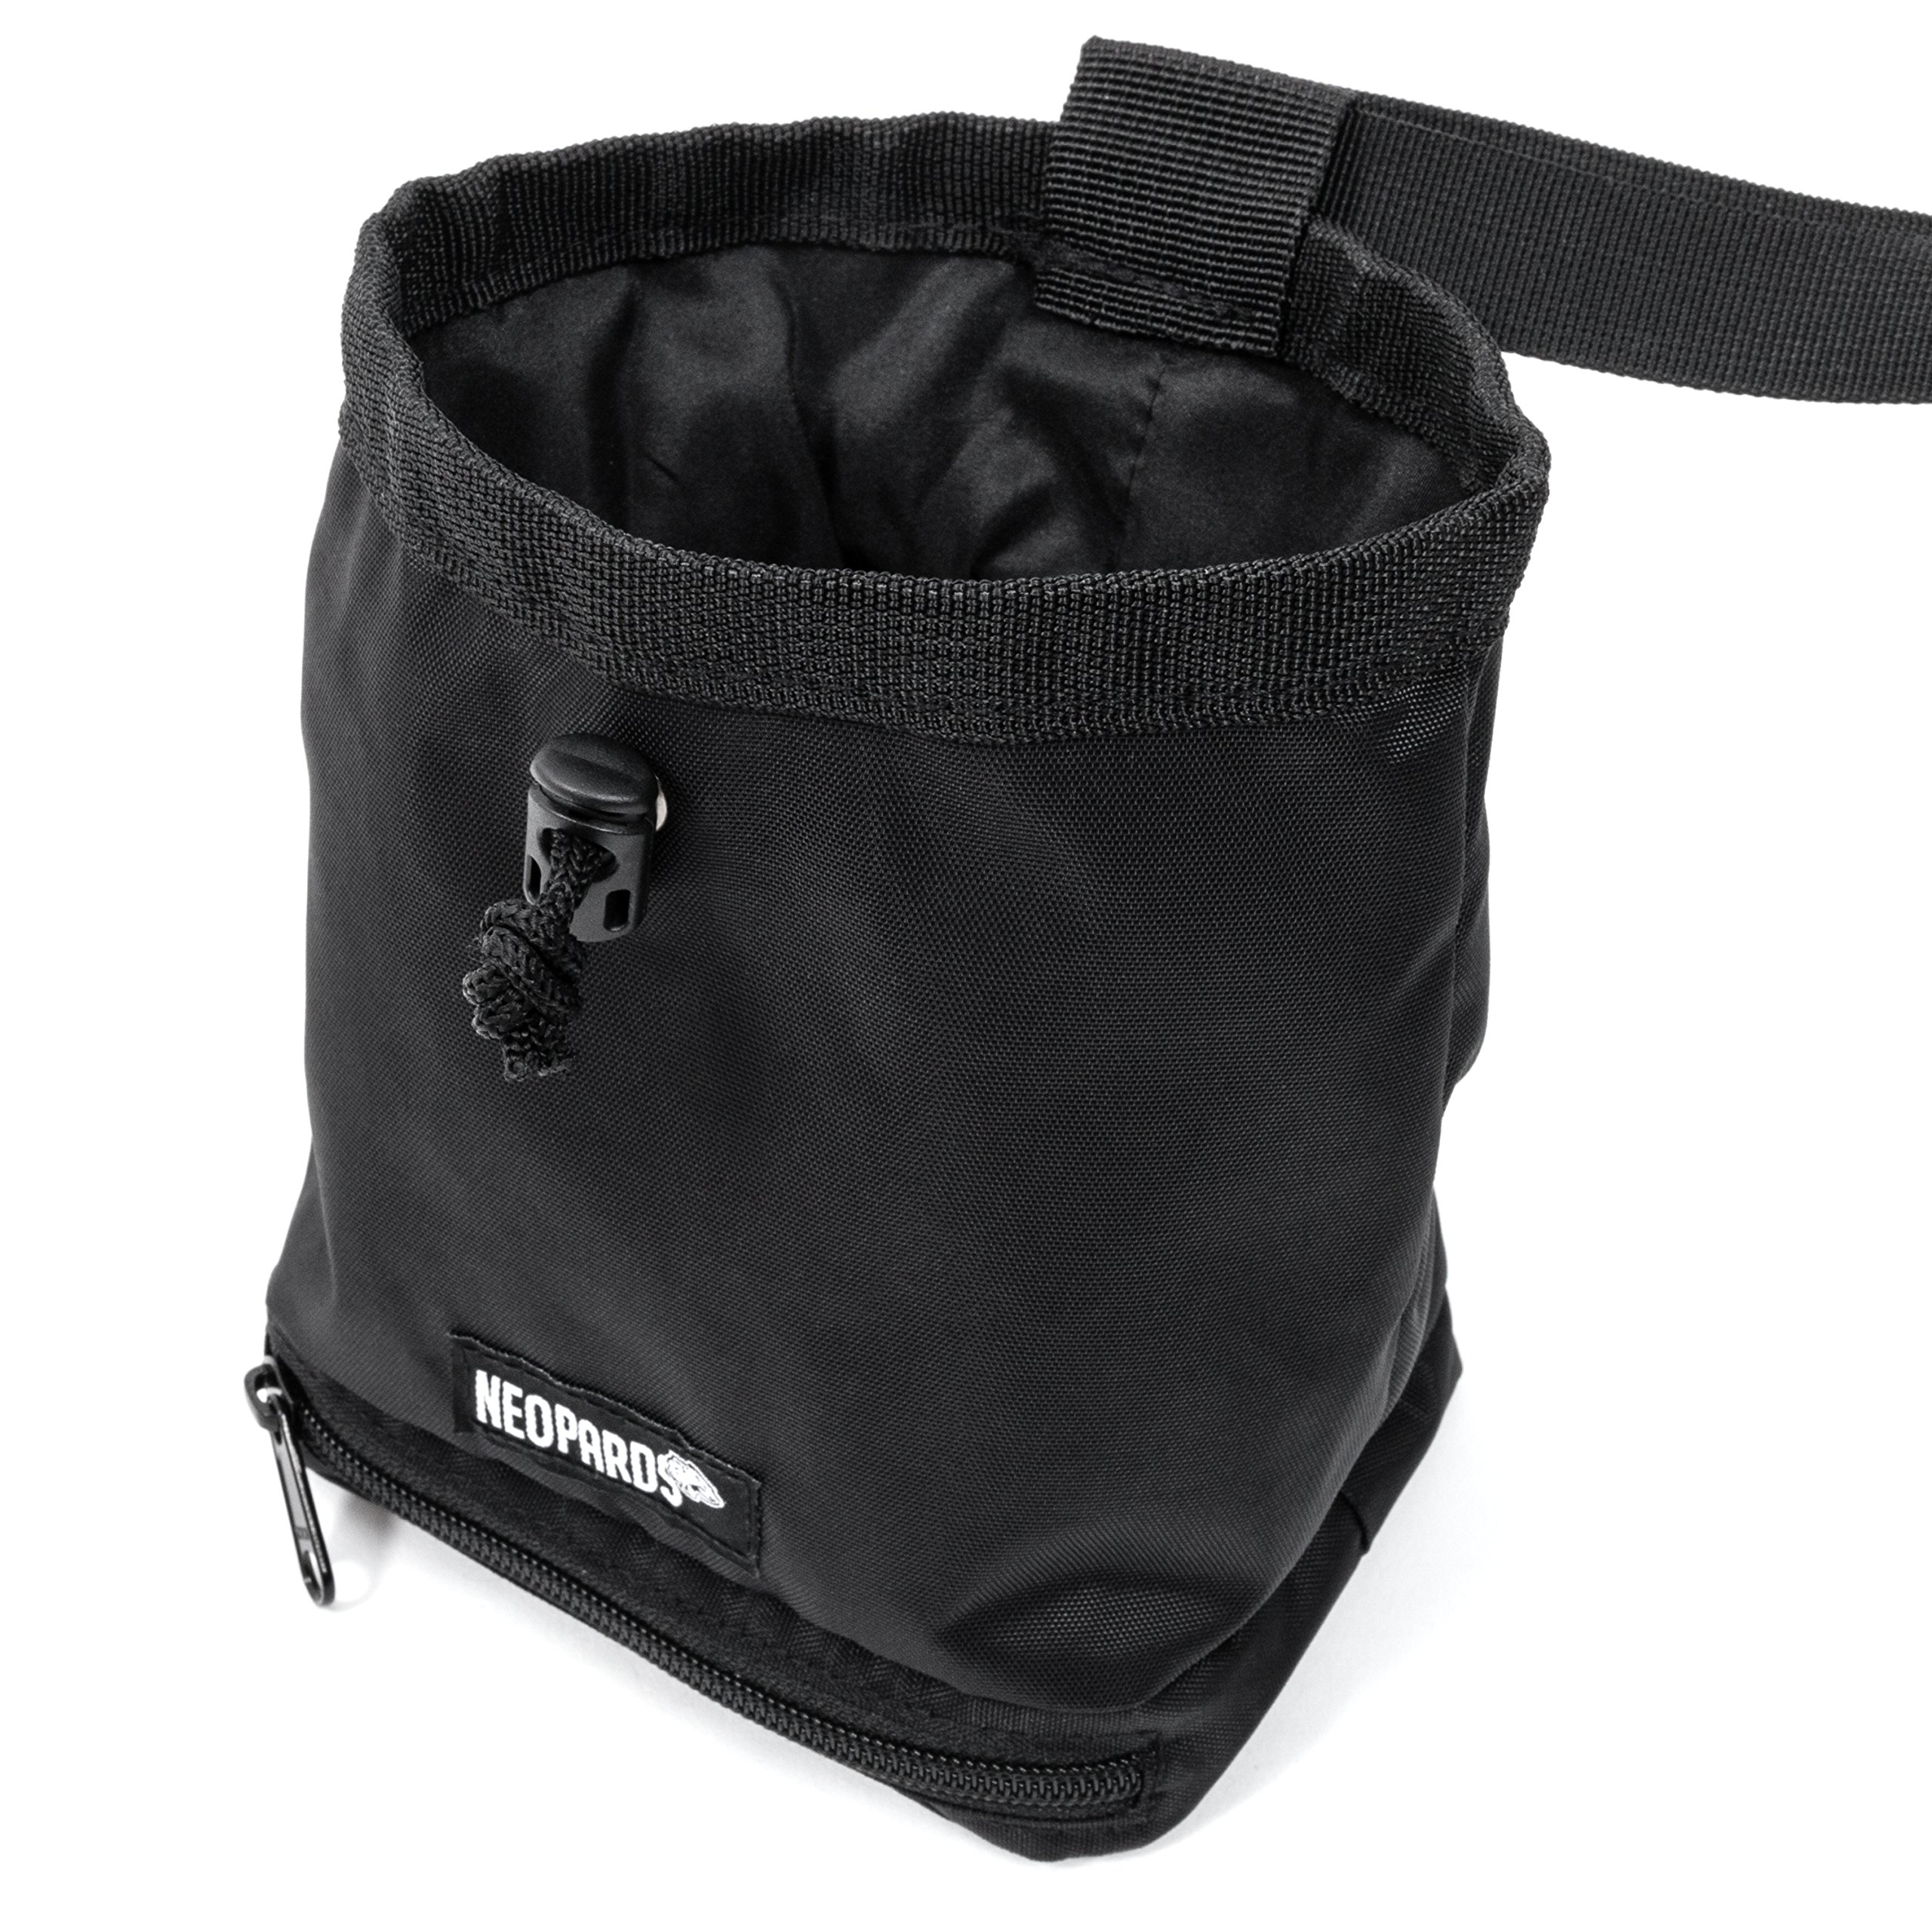 Neopards Drawstring Chalk Bag   Highend Rock Climbing Chalk Bag for Bouldering, Weightlifting, Gymnastics   Chalk Pouch with Waist Belt and Zippered Bottom Pocket To Securely Hold iPhone and Valuables